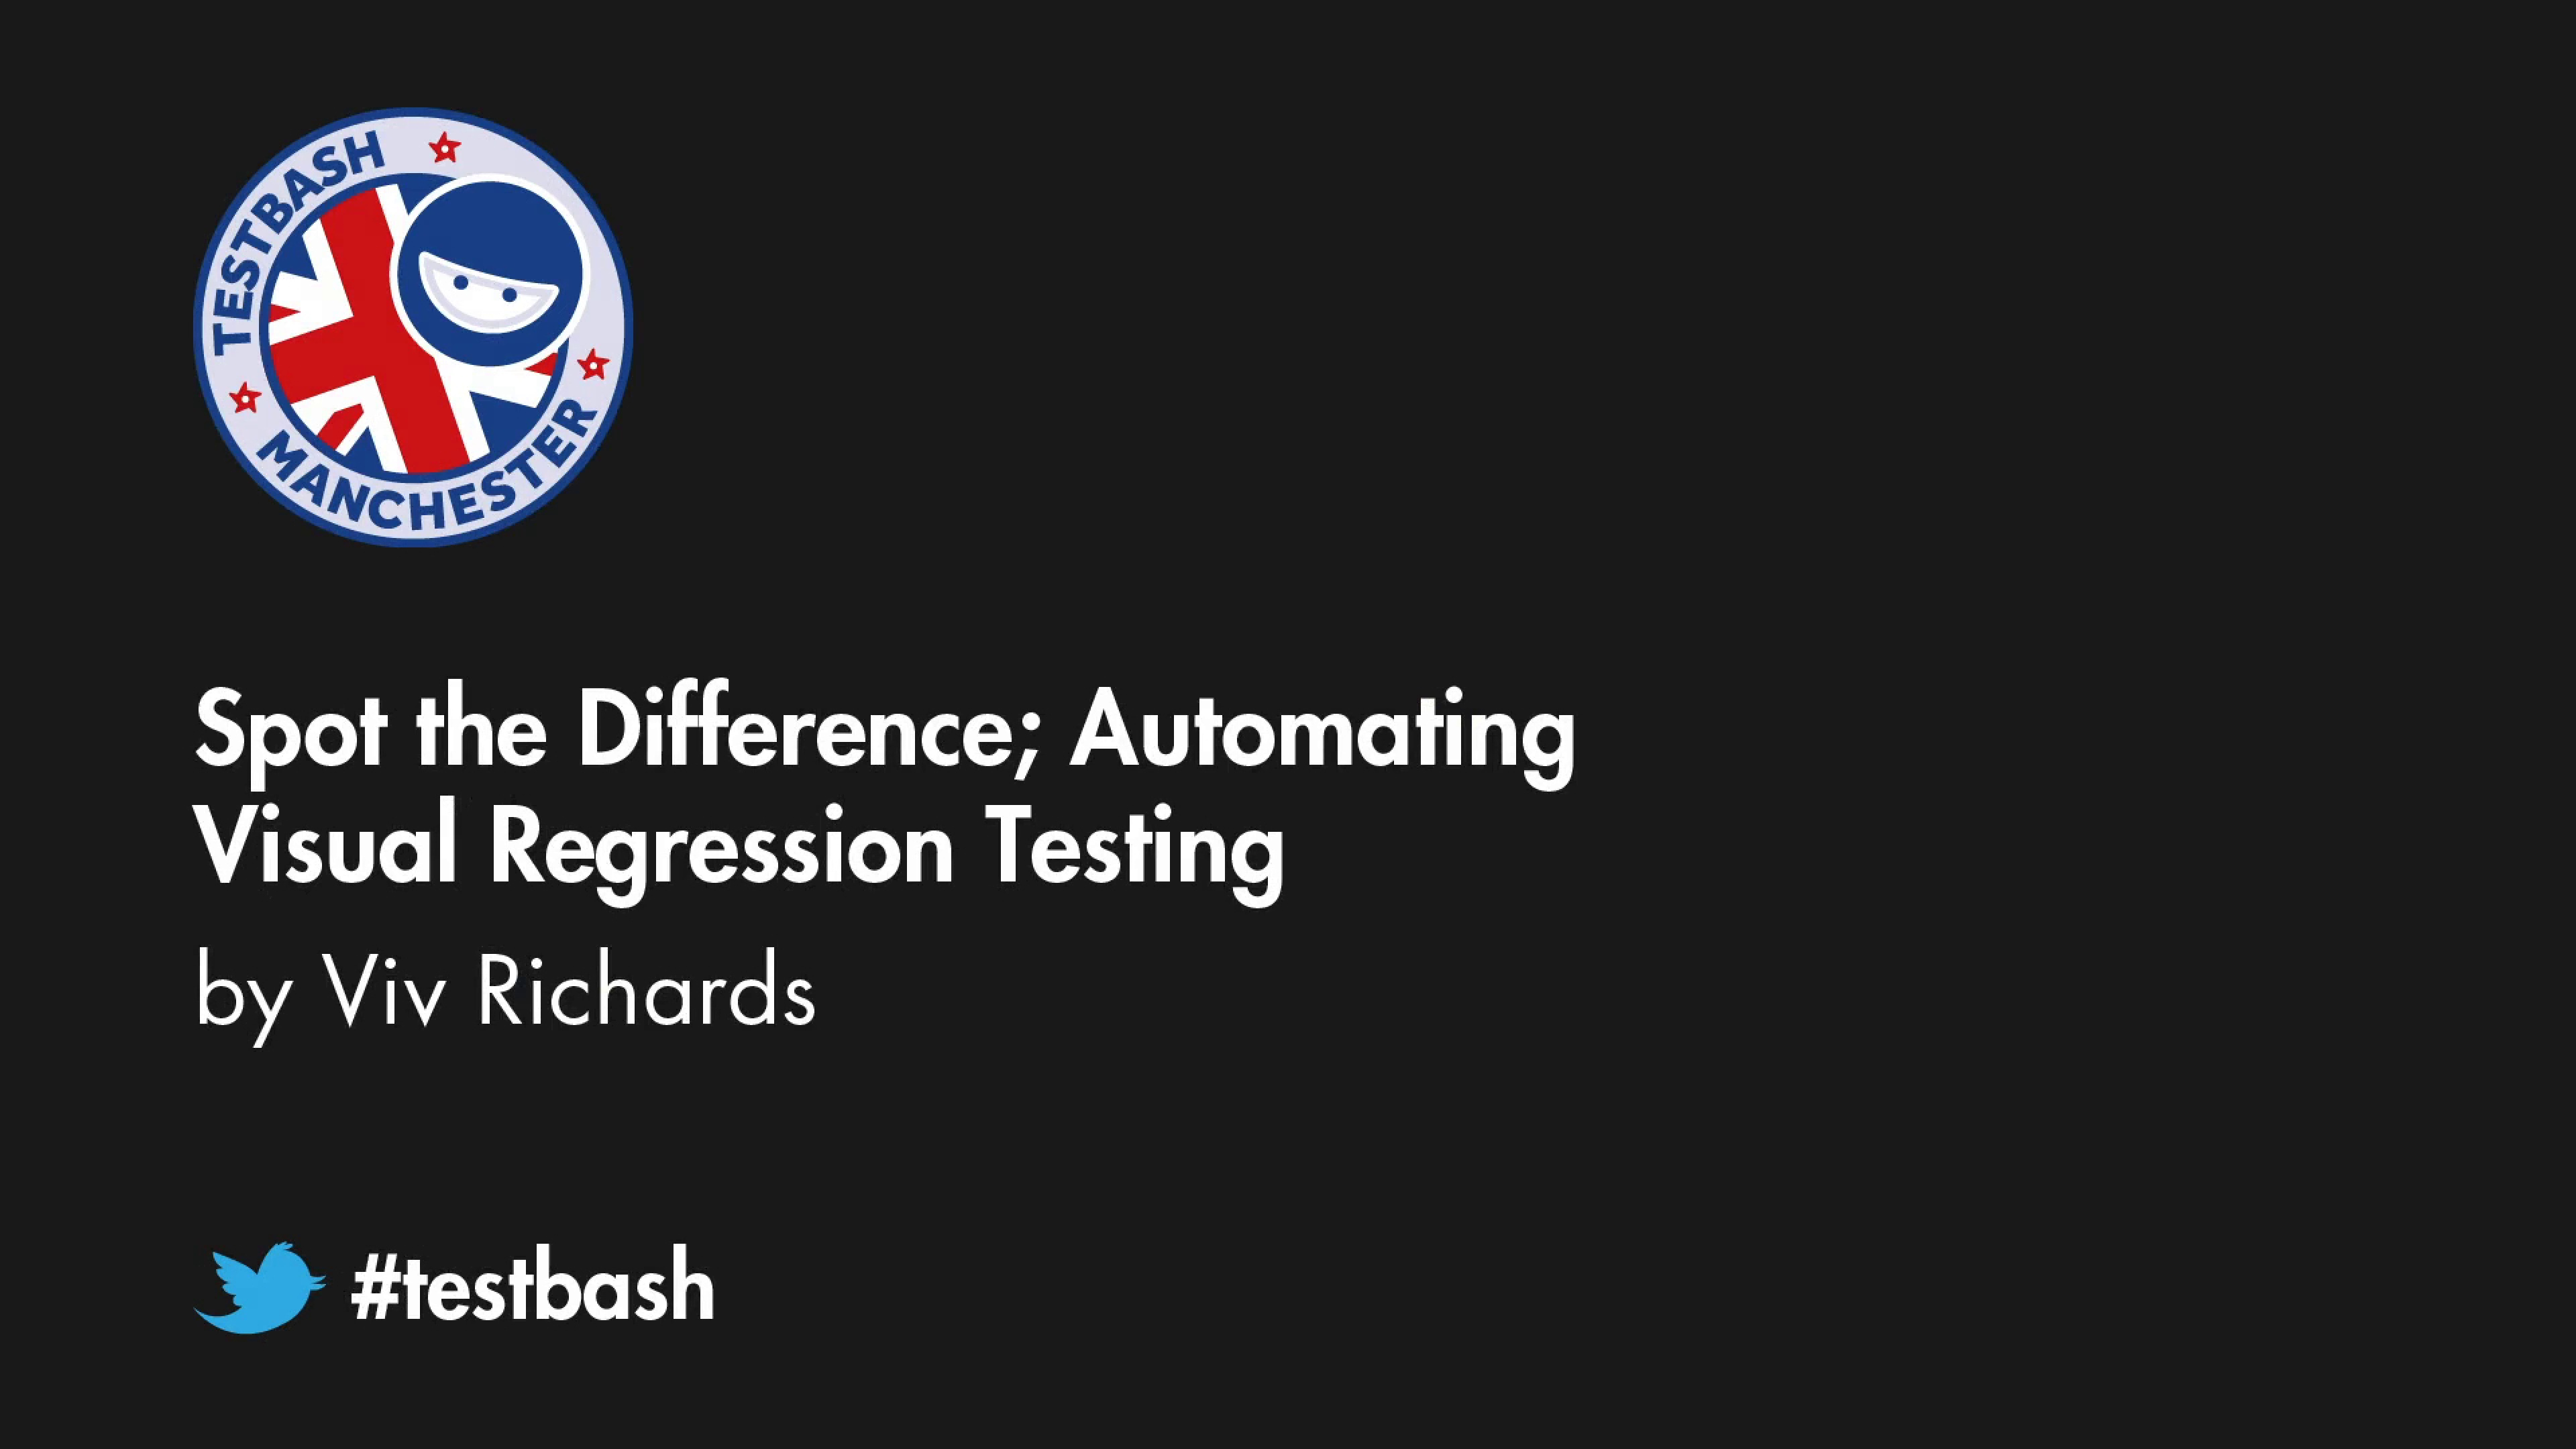 Spot the Difference; Automating Visual Regression Testing - Viv Richards